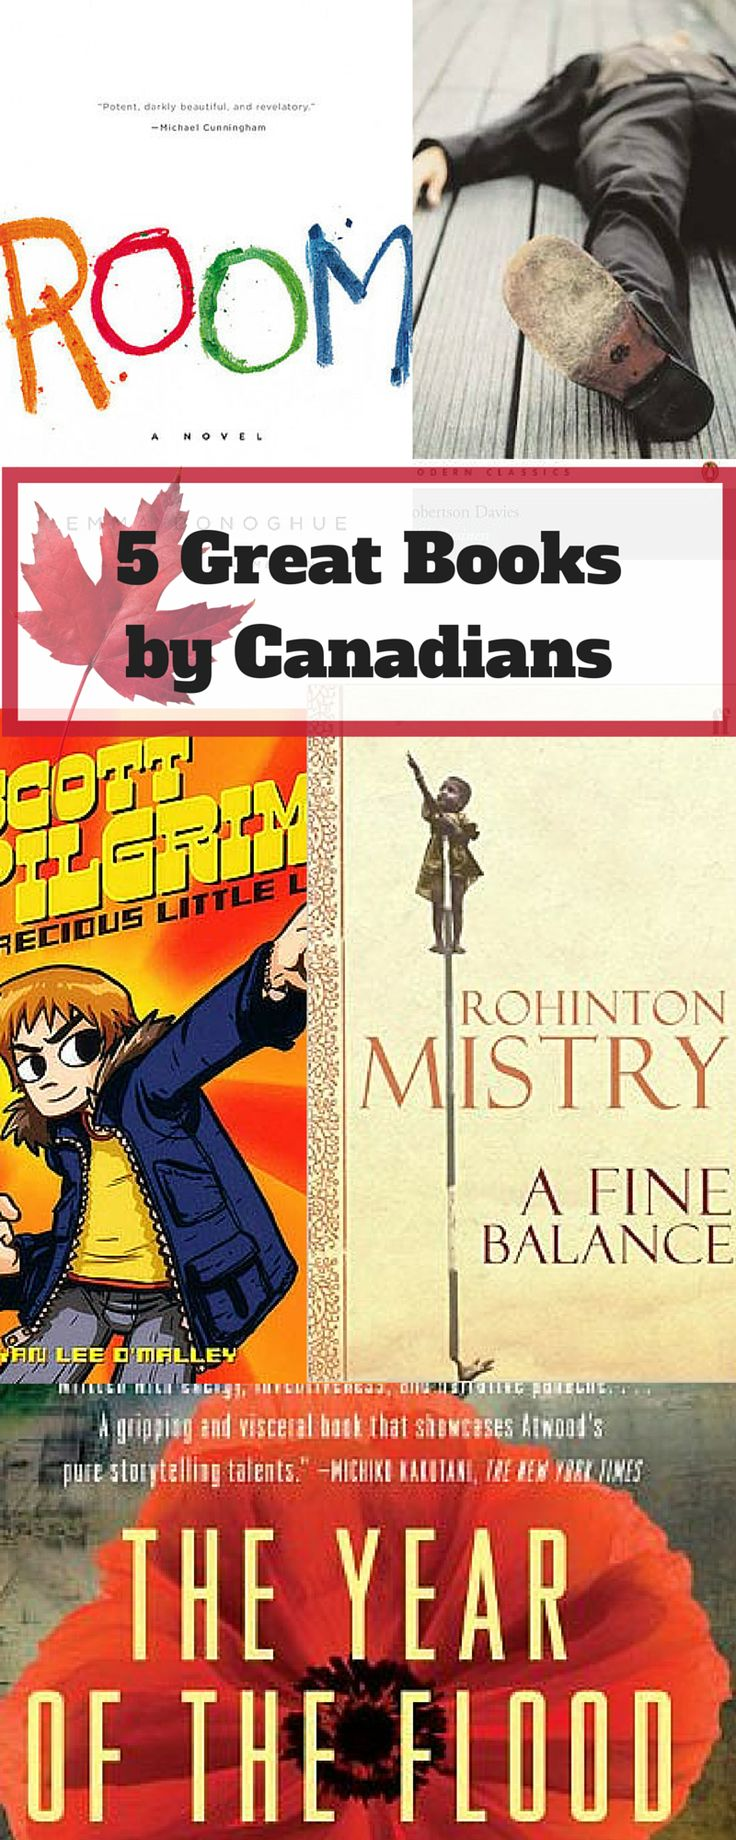 5 Great Books by Canadians. In honour of Remembrance Day, this post lists 5 books by Canadians you should read right now